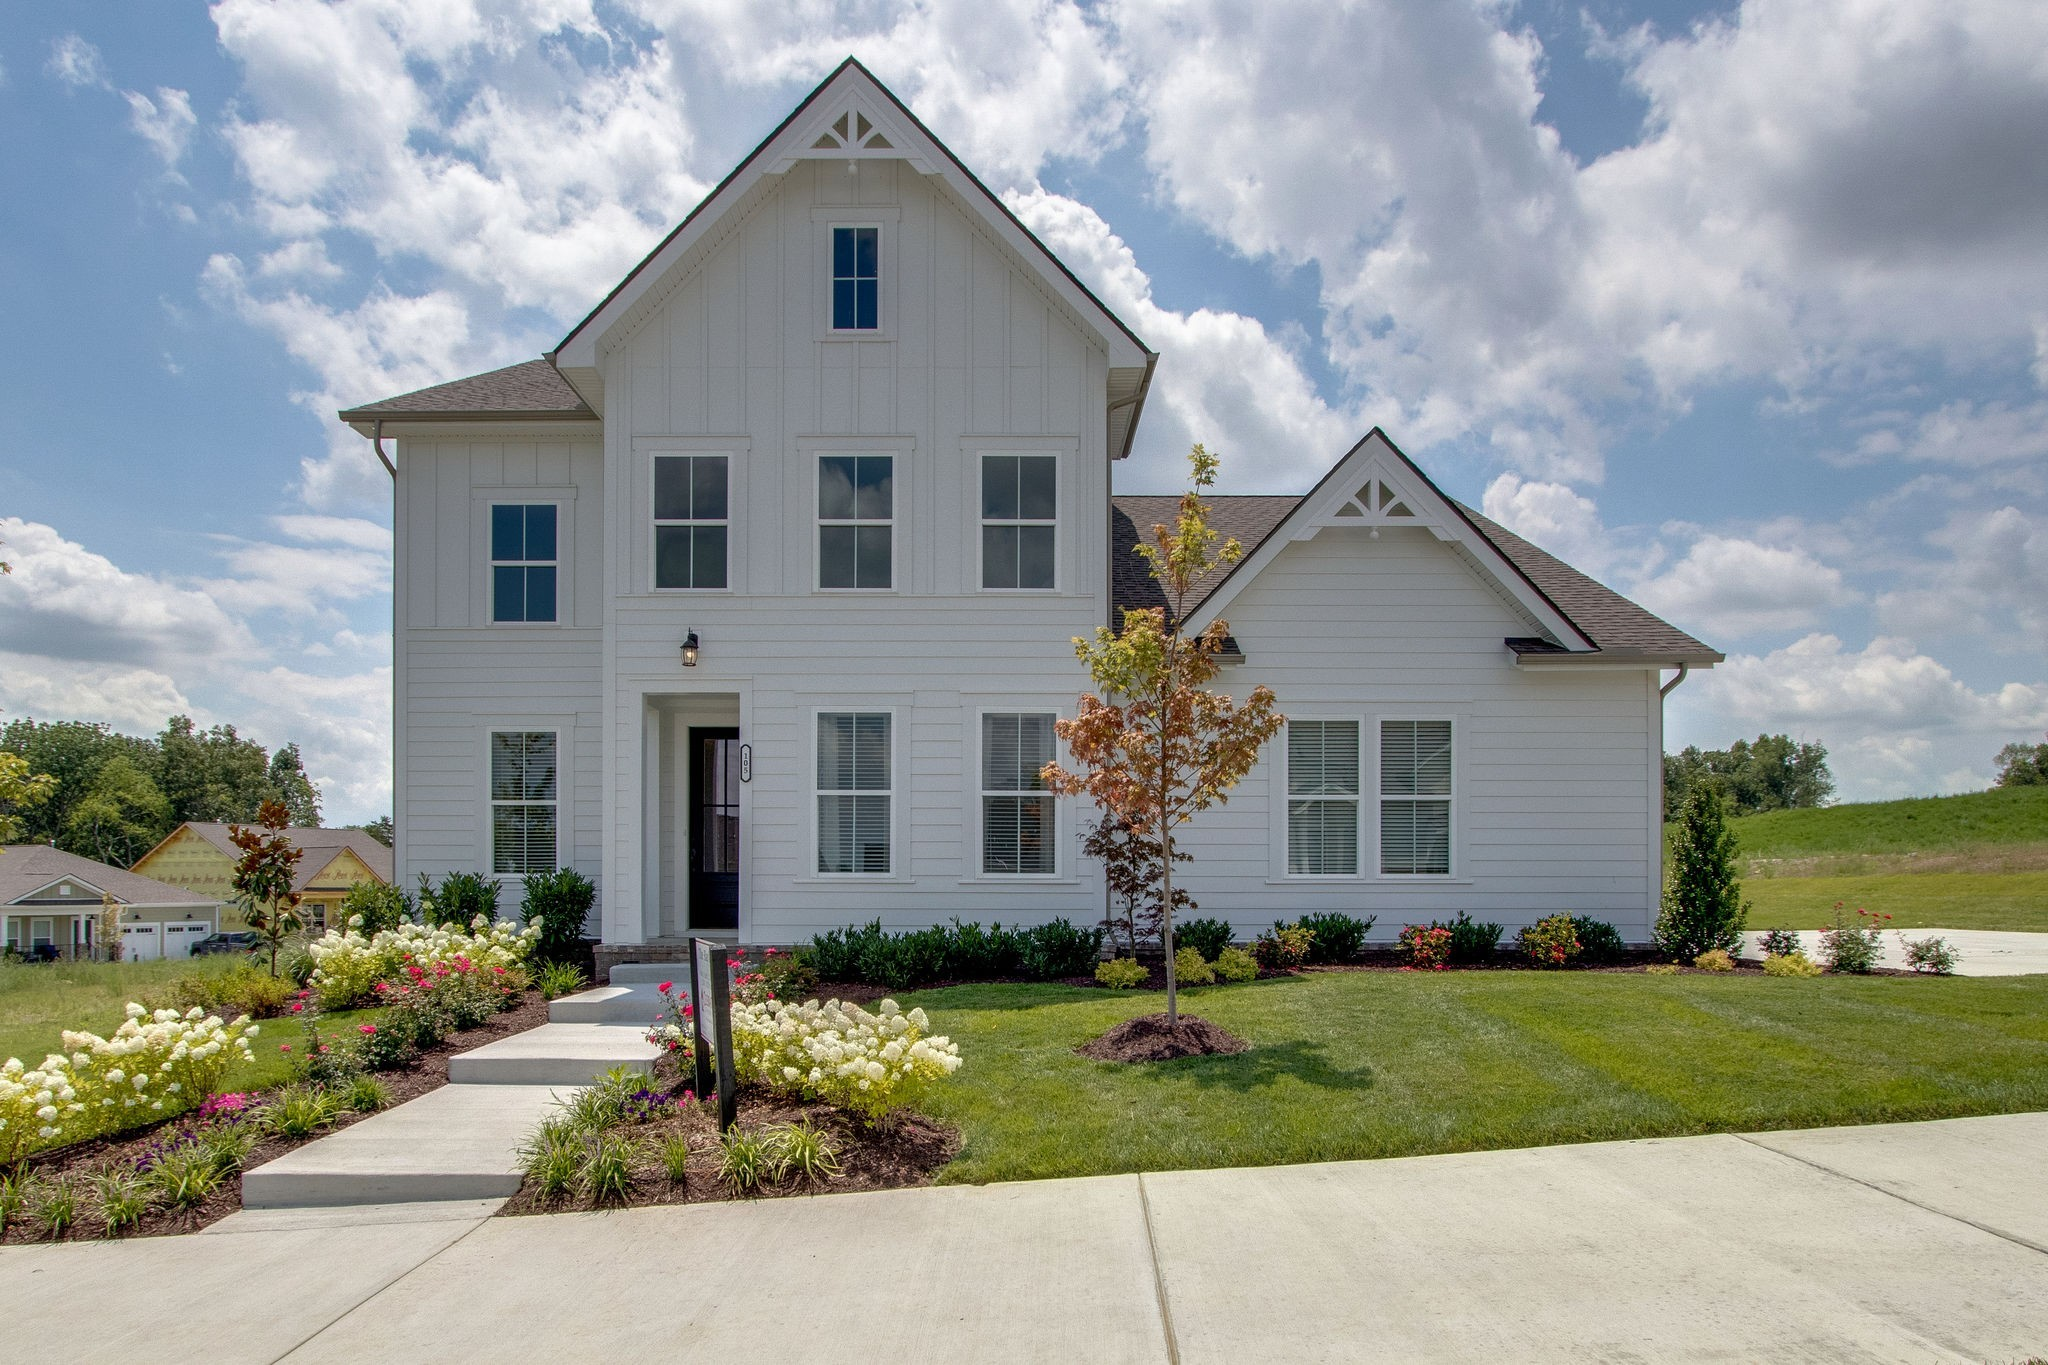 7044 Vineyard Valley Dr Property Photo - College Grove, TN real estate listing